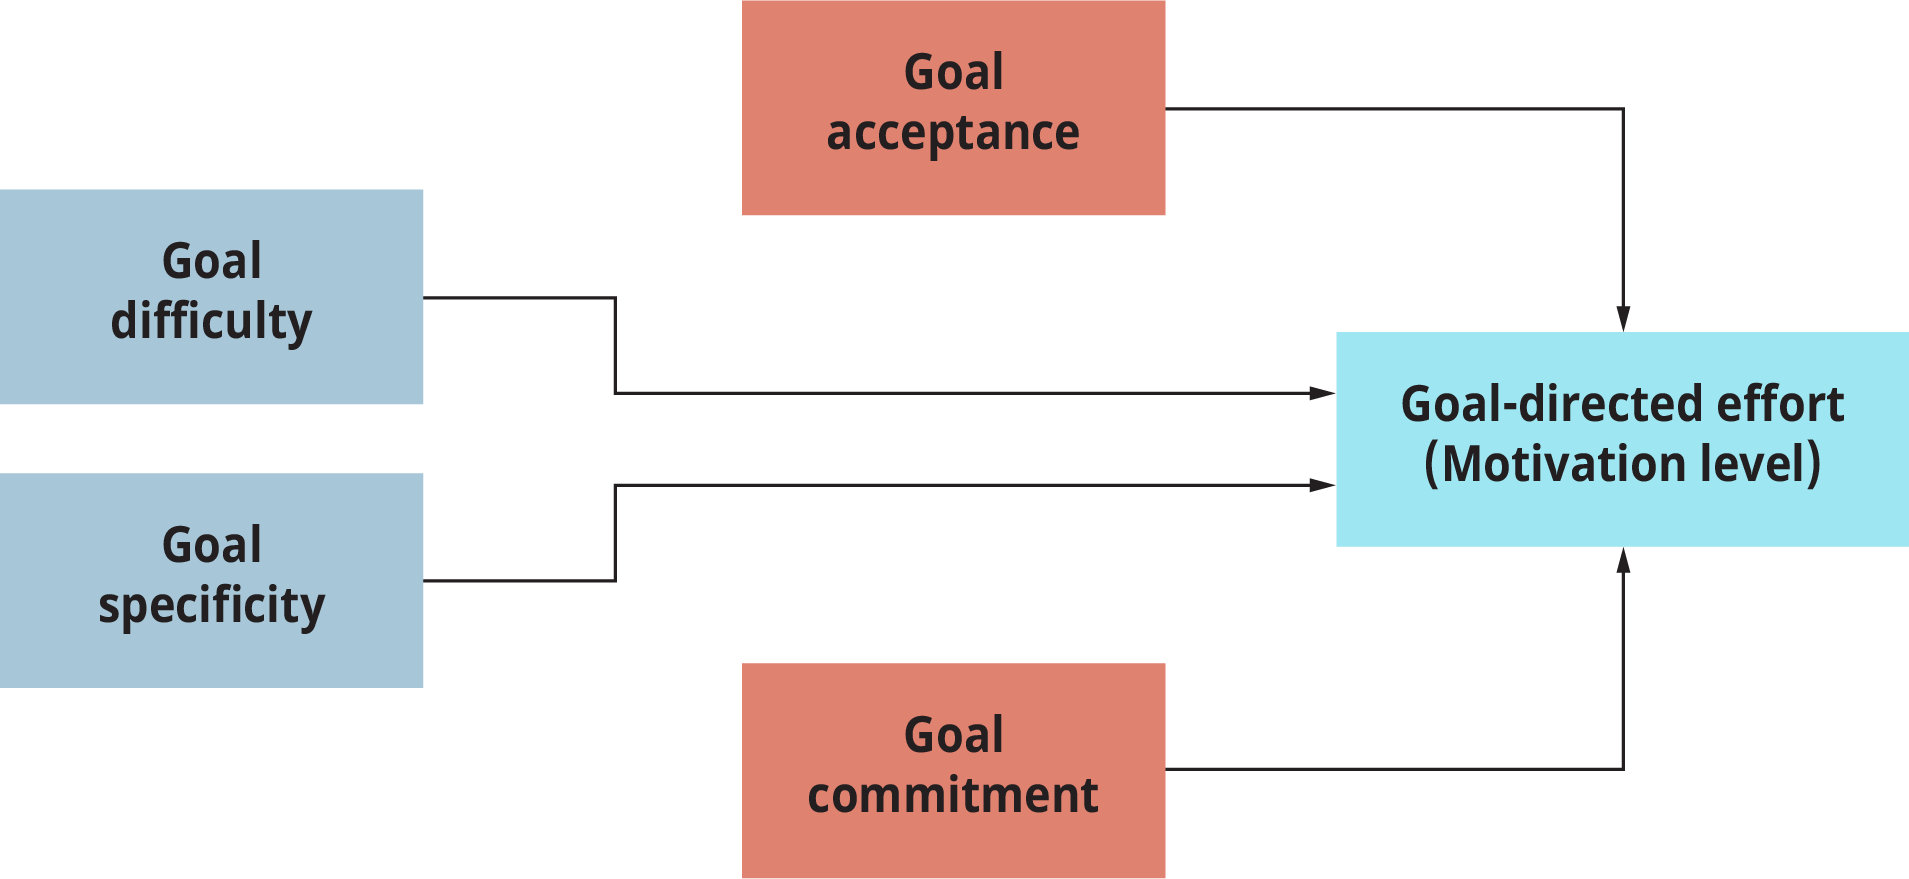 A model of goal setting represents the conditions necessary to maximize goal-directed effort.